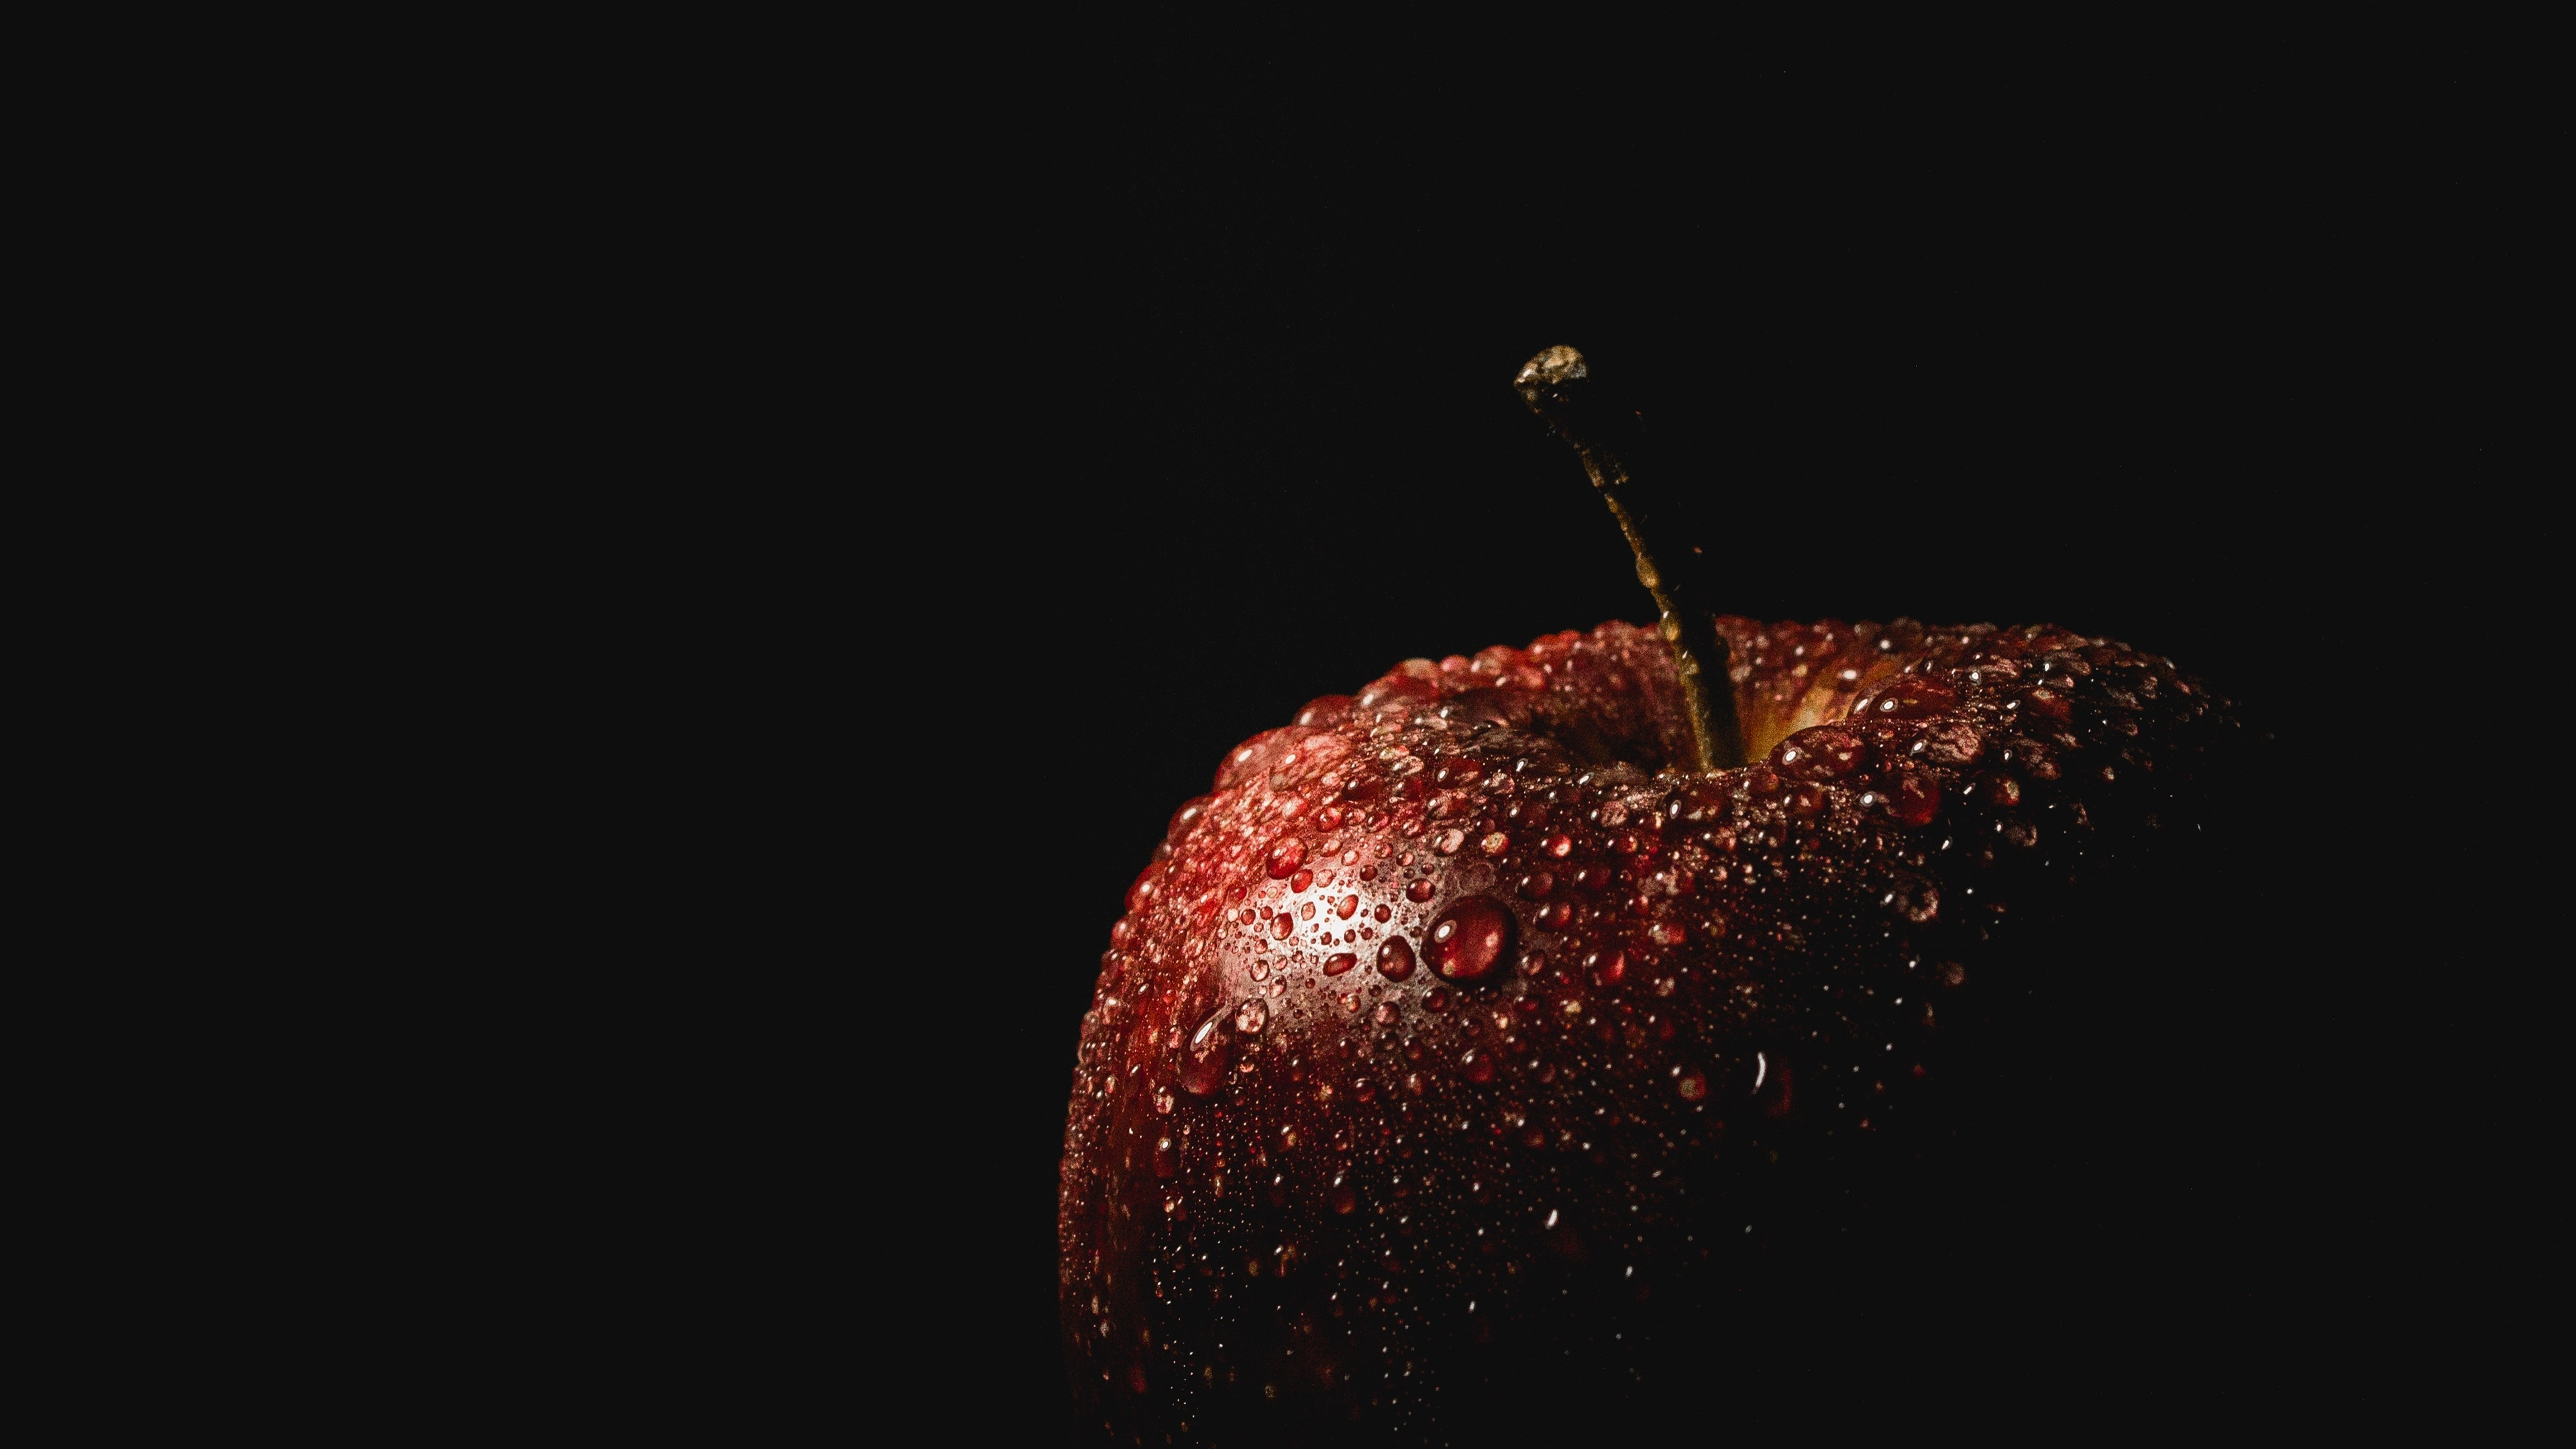 Red apple water droplets